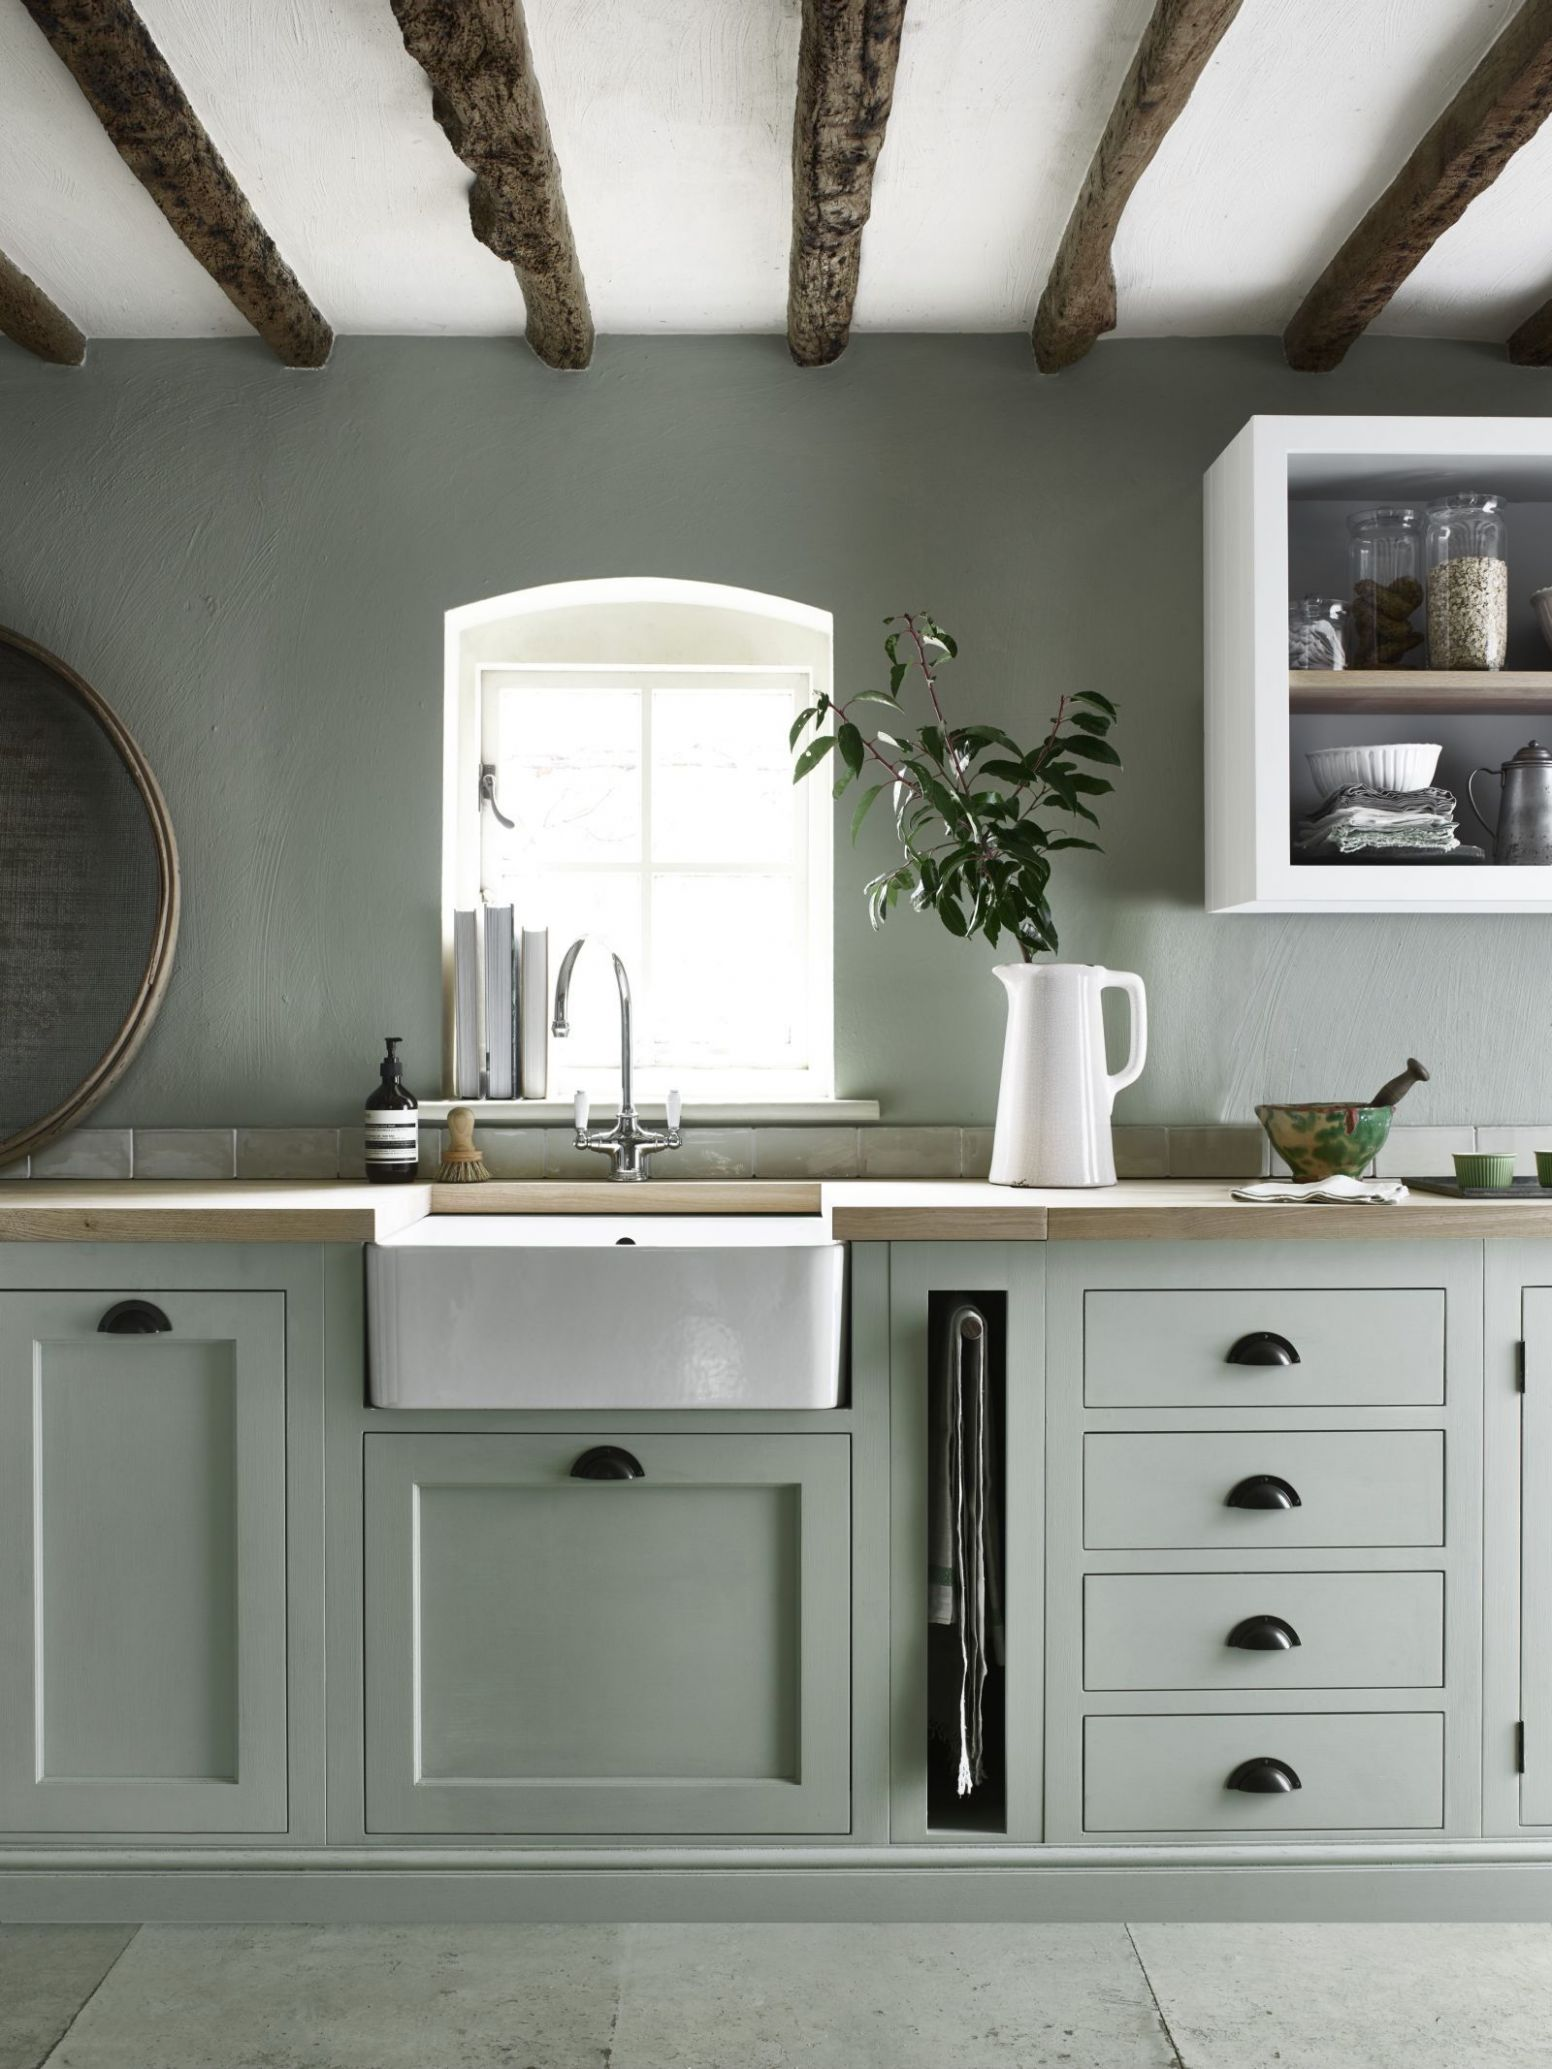 10 ways to create a country kitchen that's fit for 10 | Green ...